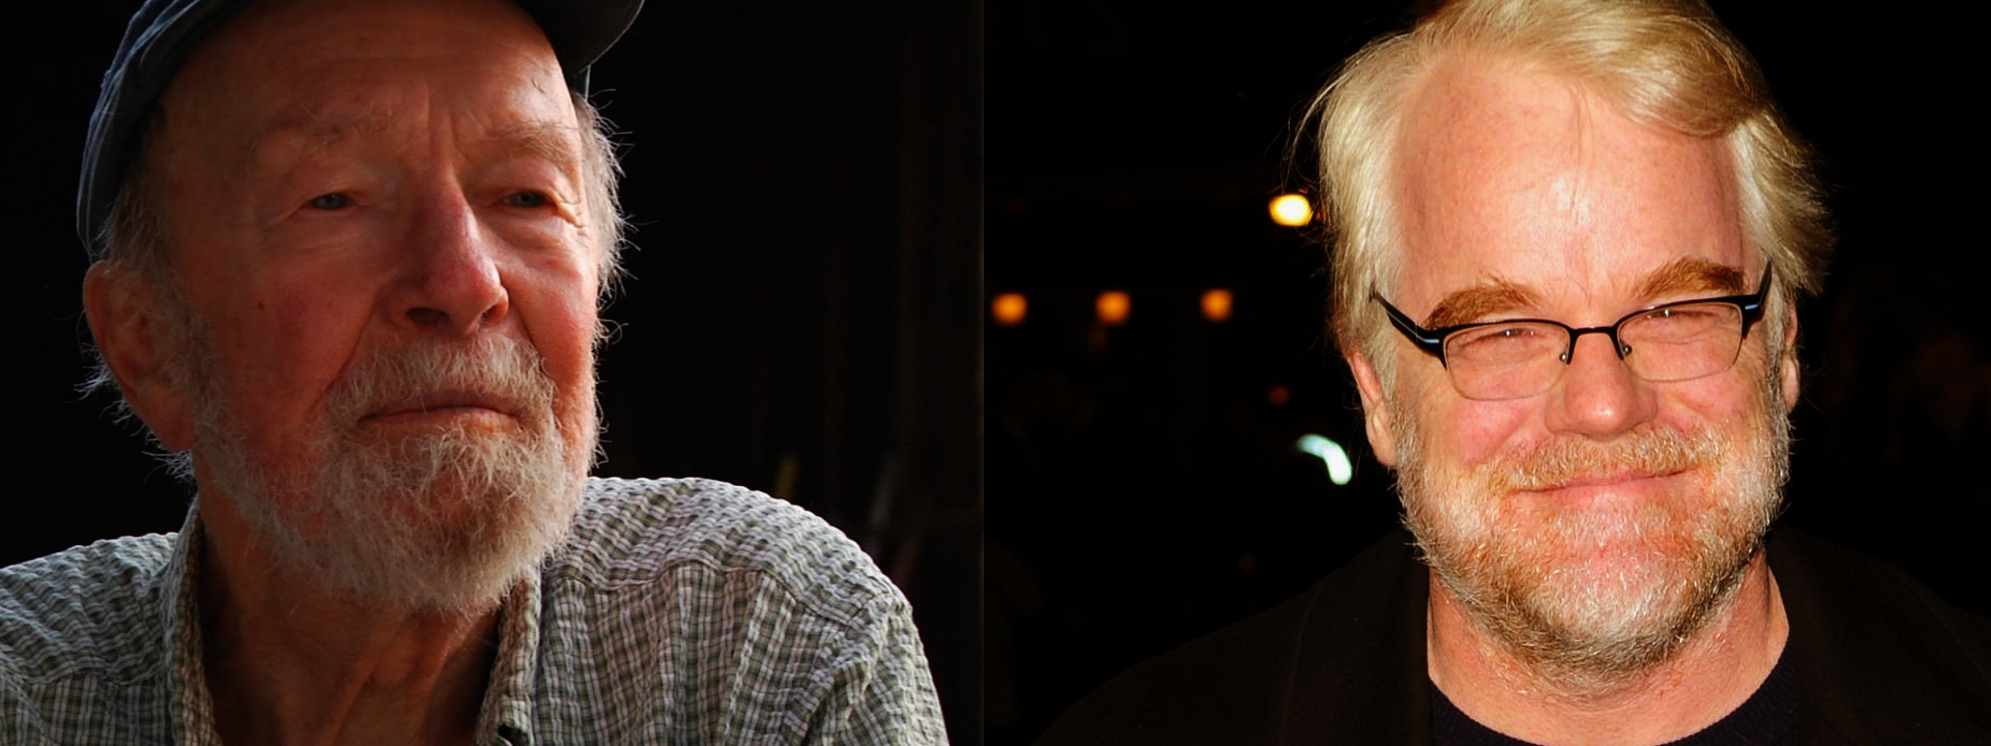 Pete Seeger (left) and Philip Seymour Hoffman (right)